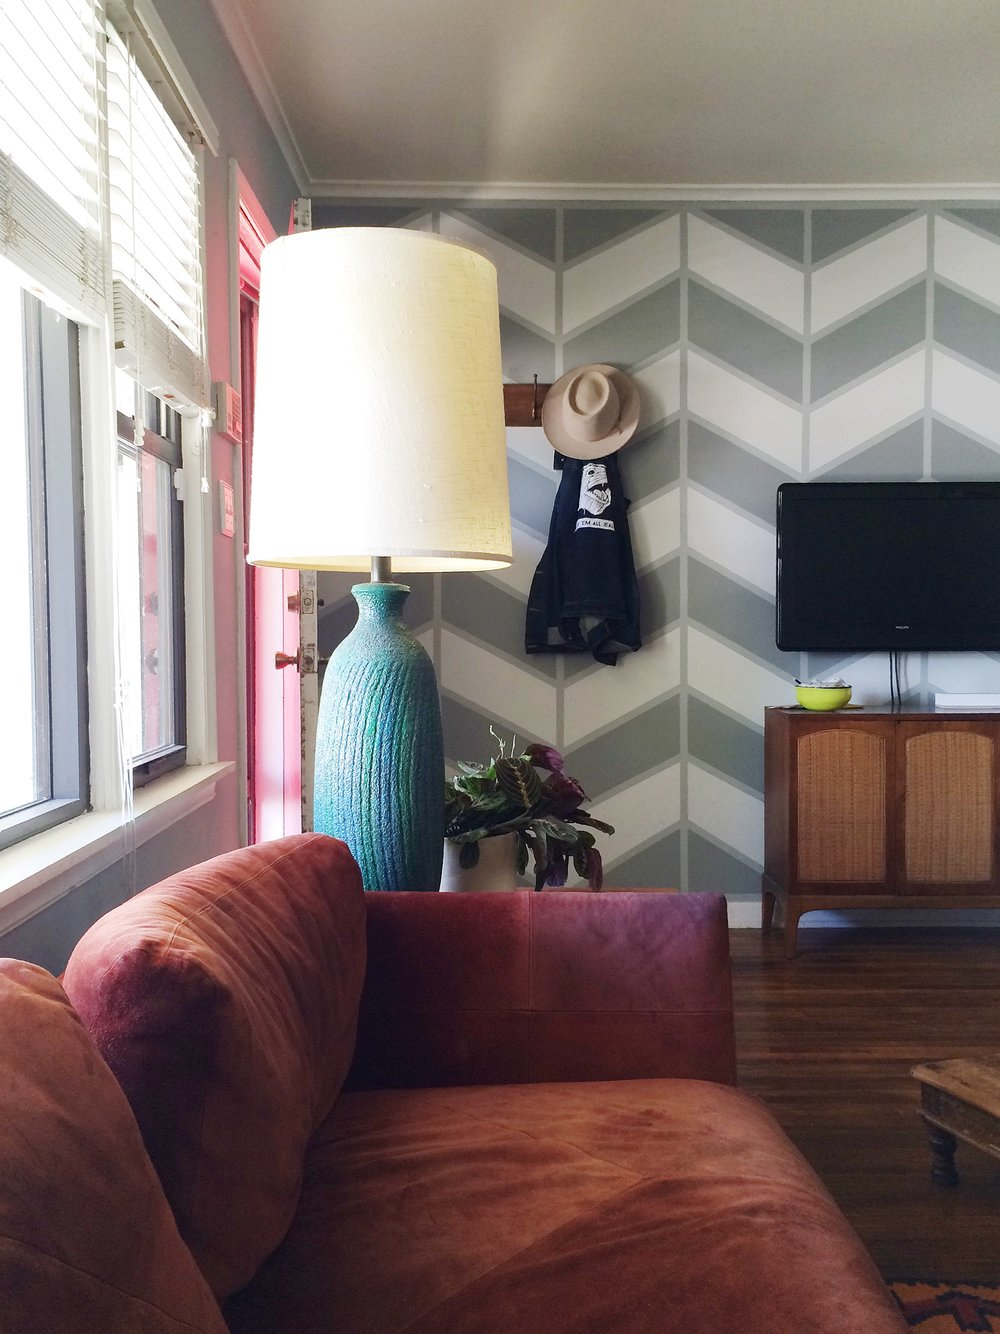 Chevron patterned wall